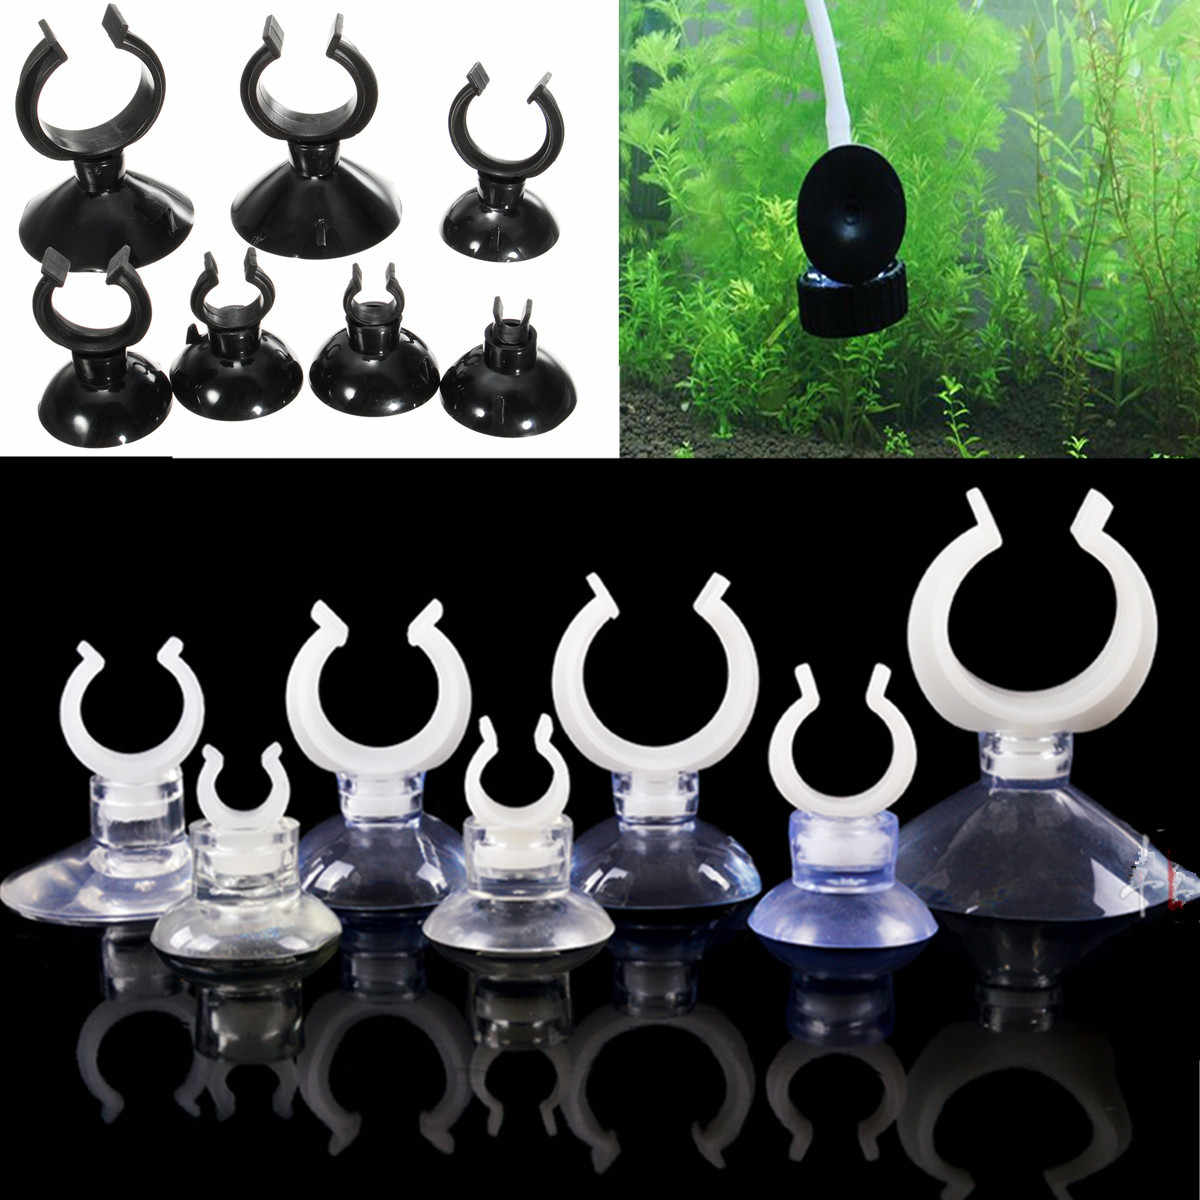 10pcs Aquarium Fish Tank Suction Cup Heating Sucker Clips Holders For Air Line Oxygen Tube Hose Pump Double Sided Suction Cups